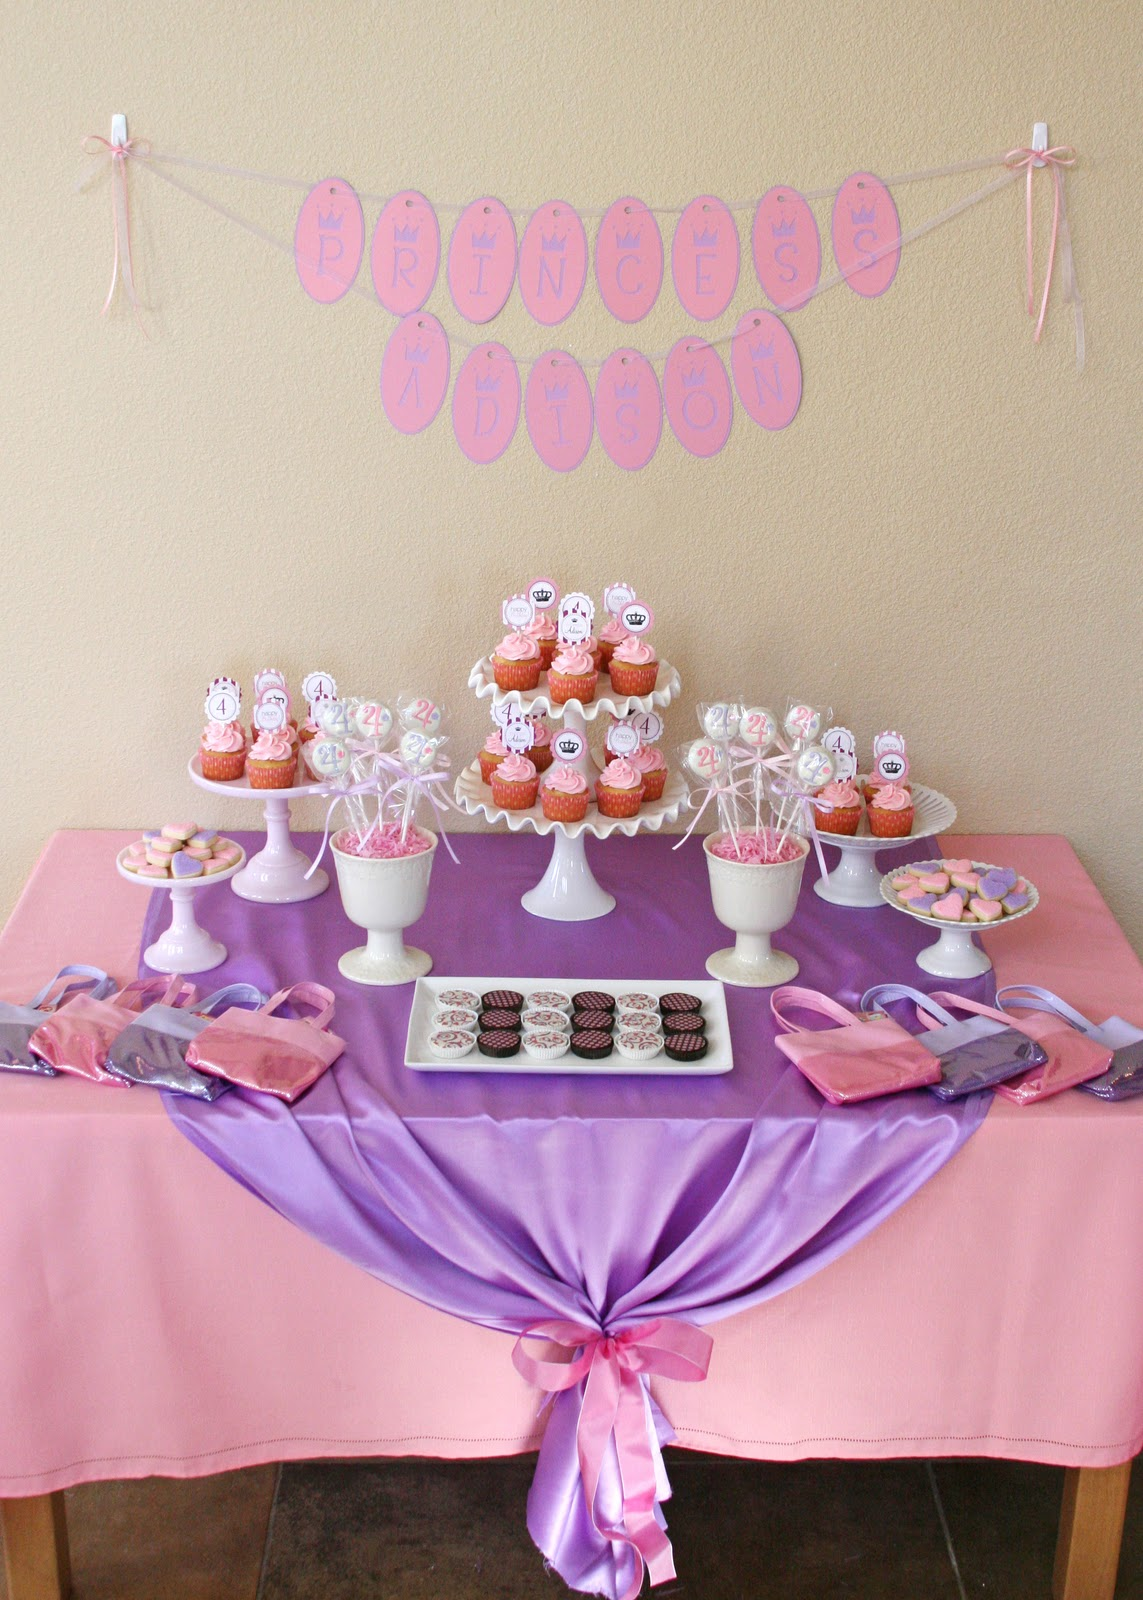 15 Best Princess Party Ideas To Organize A Perfect Party ... |Princess Birthday